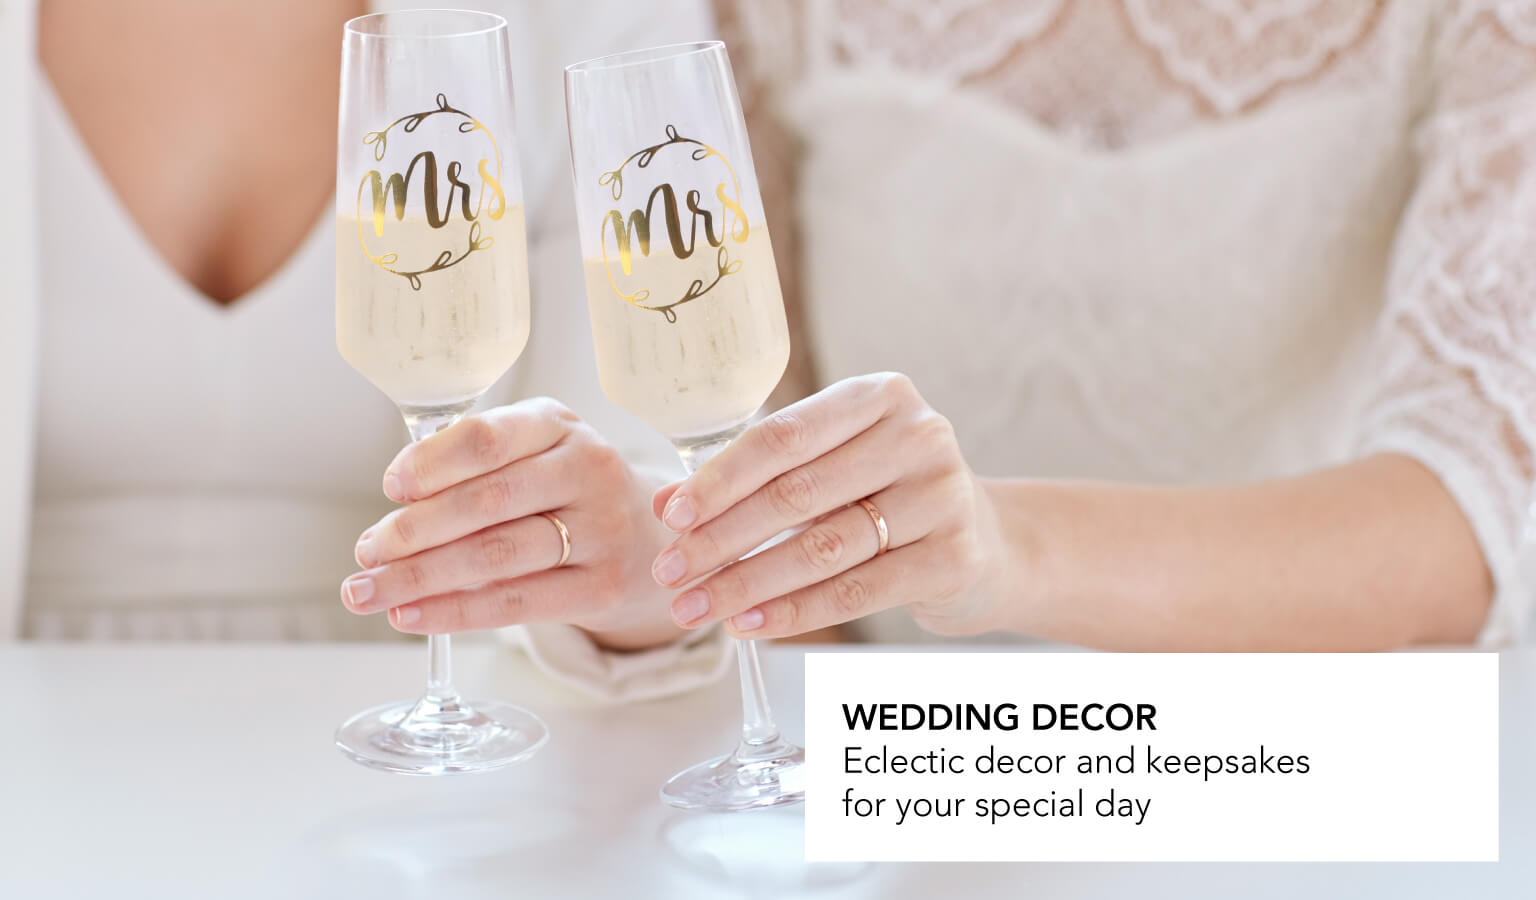 Eclectic decor and keepsakes for your special day